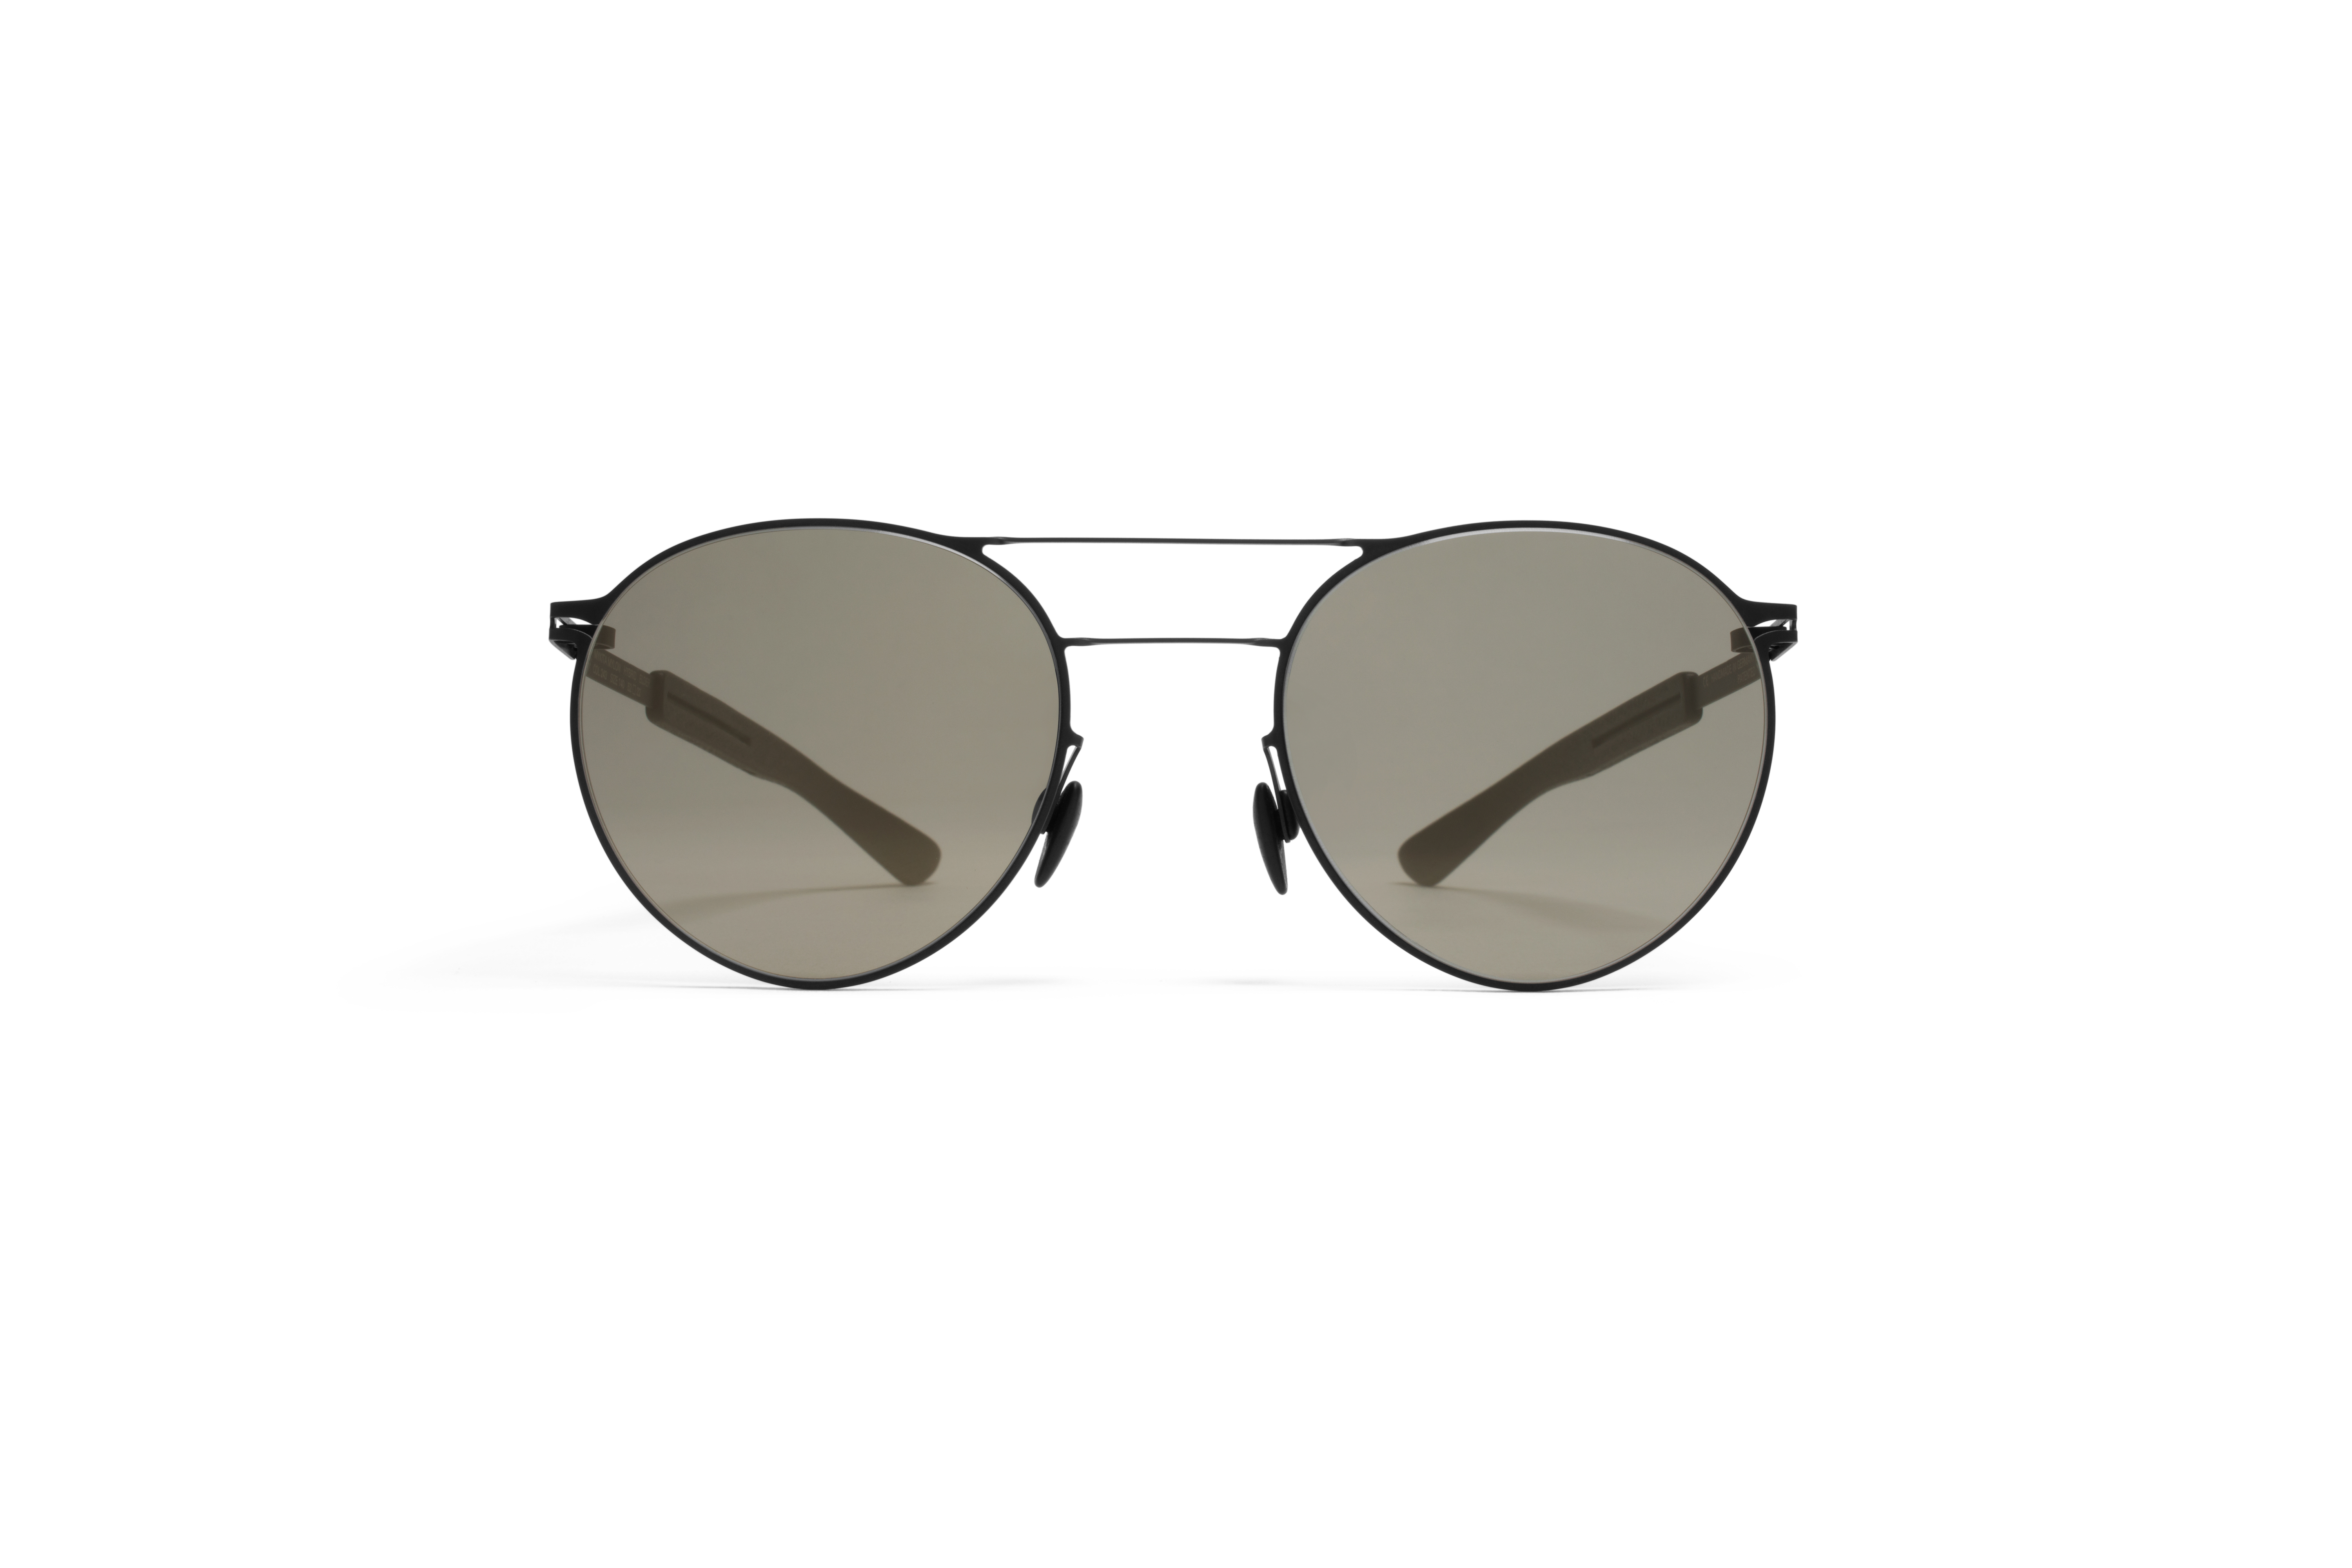 MYKITA Mylon Rx Elder Mh1 Black Pitch Black Gunmet5655bf52cf758